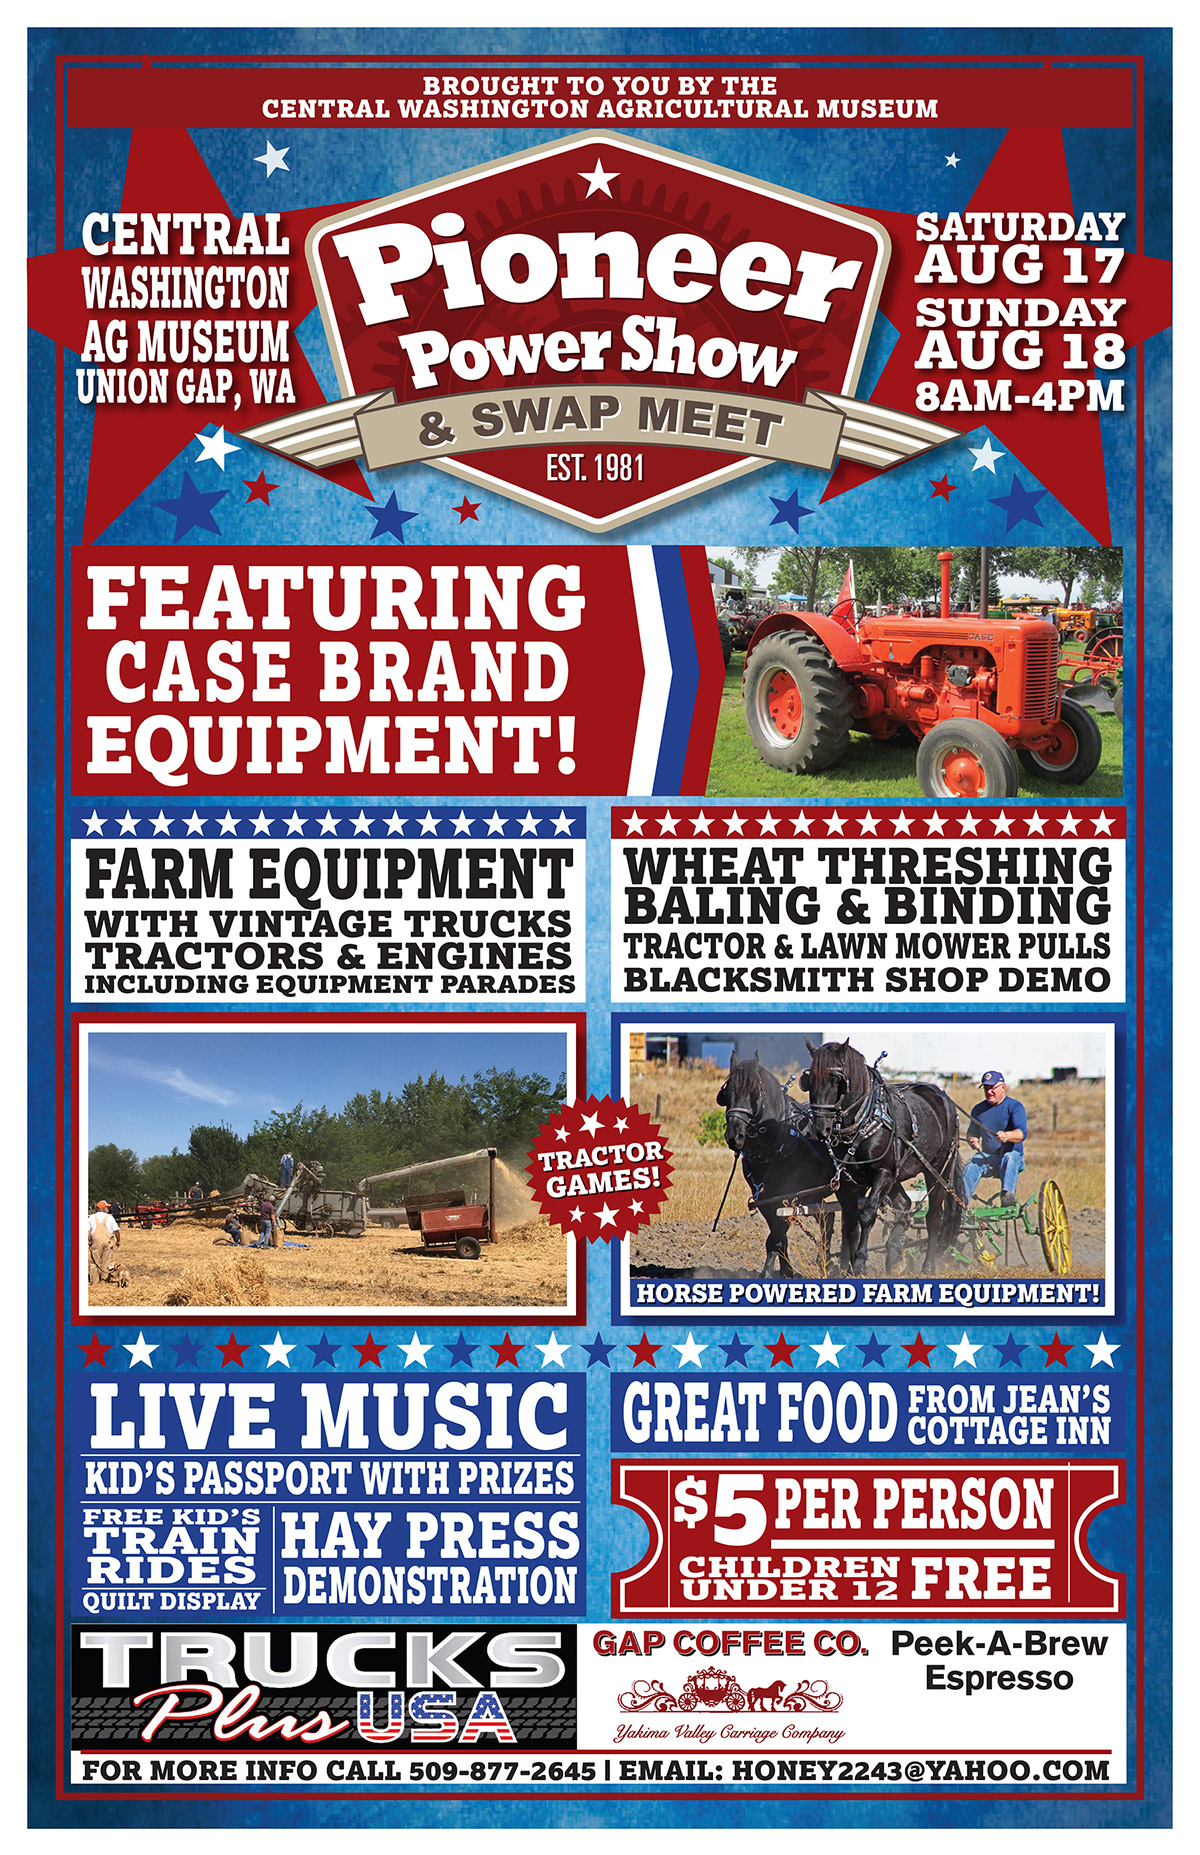 ANNUAL PIONEER POWER SHOW & SWAP MEET - Union Gap, WA